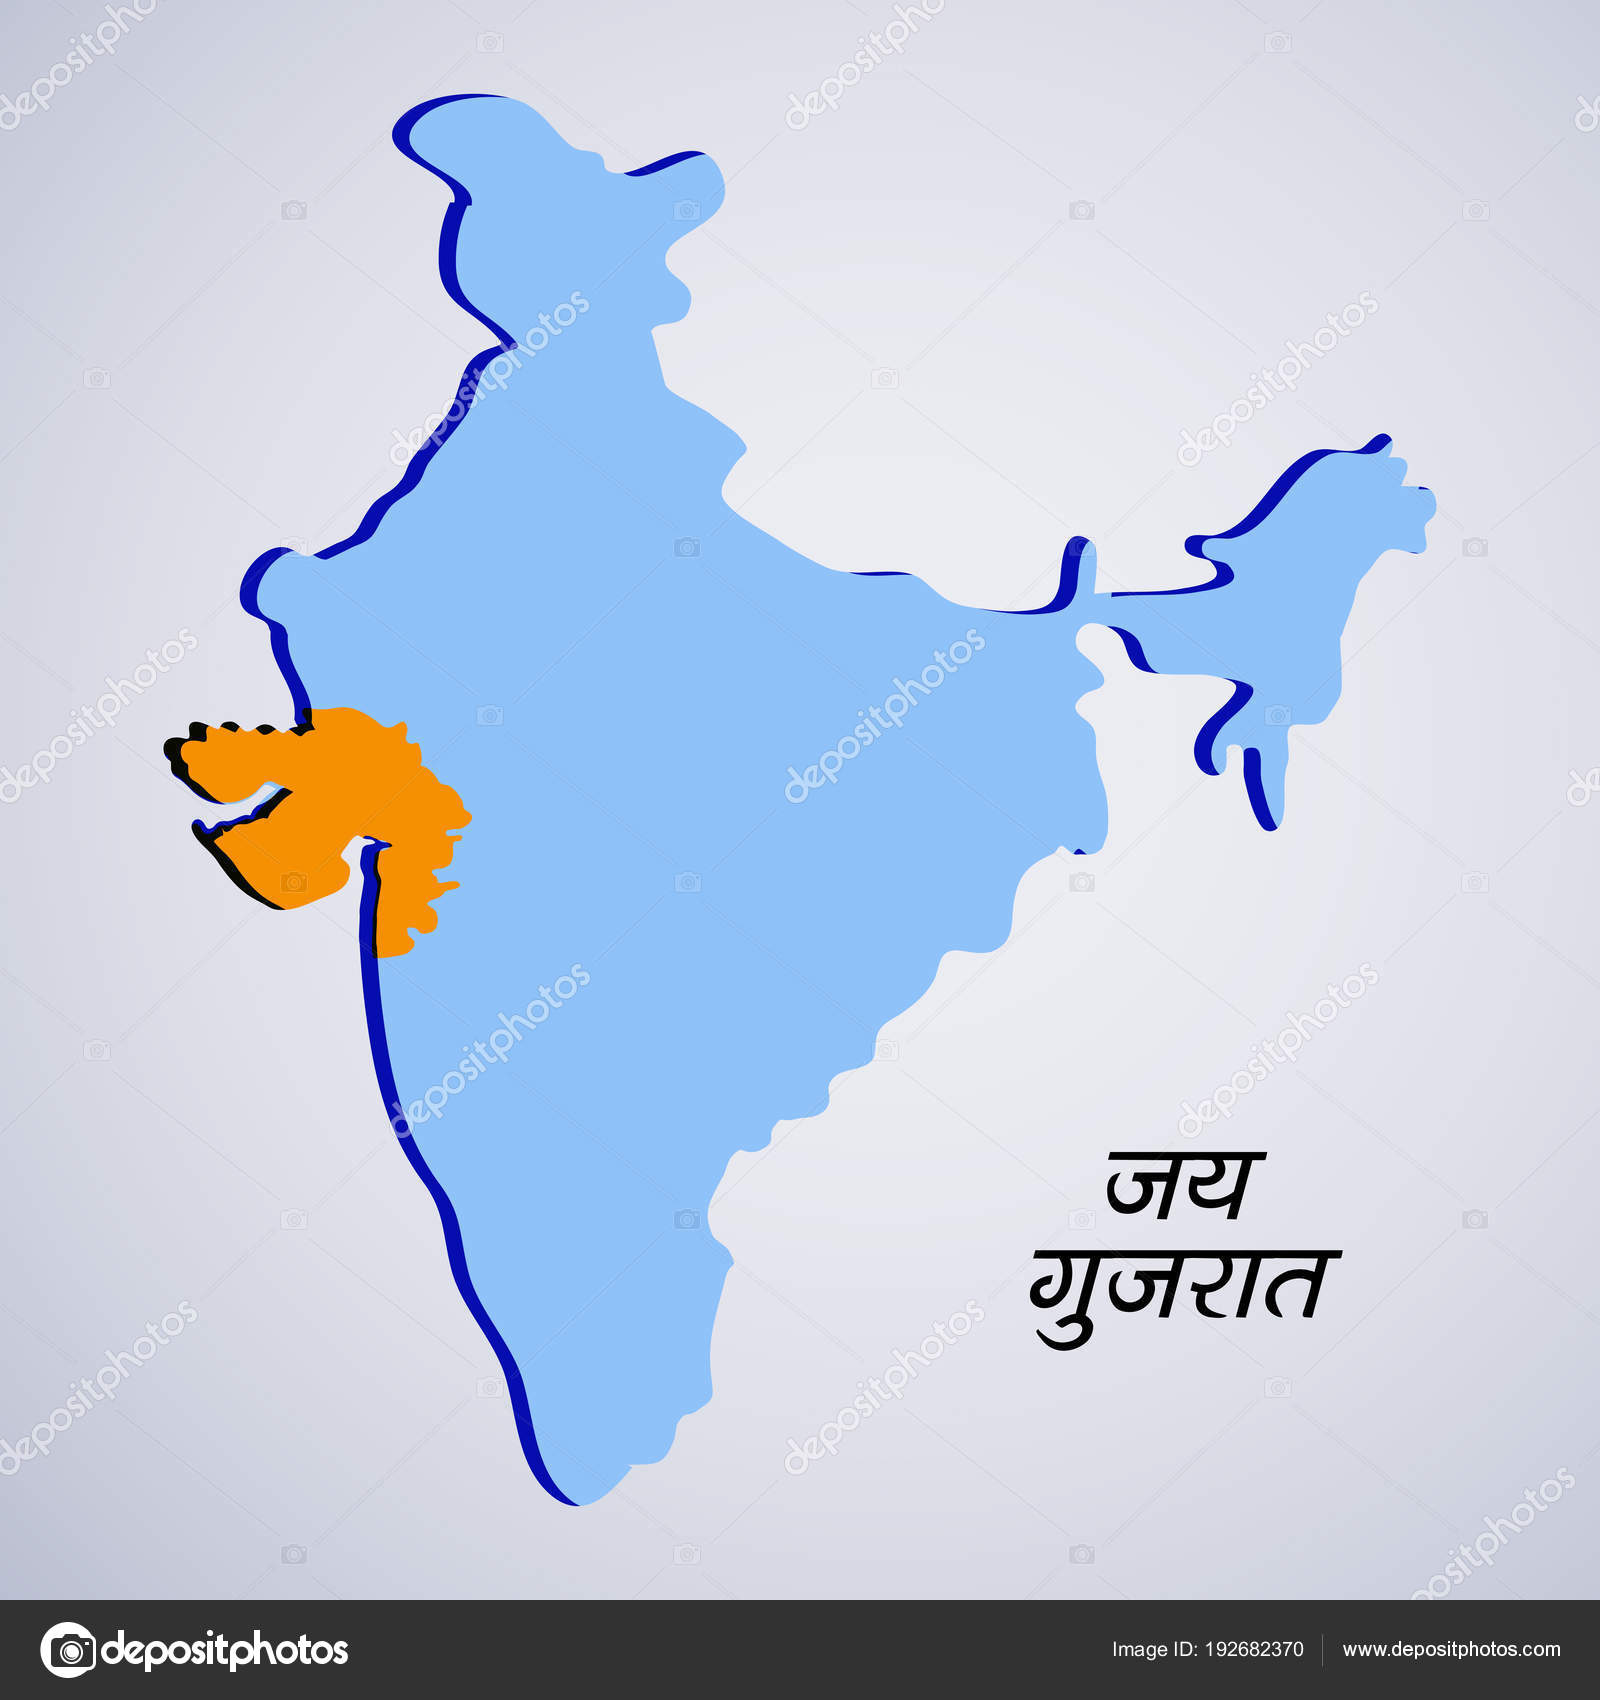 Illustration india map showing indian state gujarat hindi text jai illustration india map showing indian state gujarat hindi text jai stock vector gumiabroncs Gallery